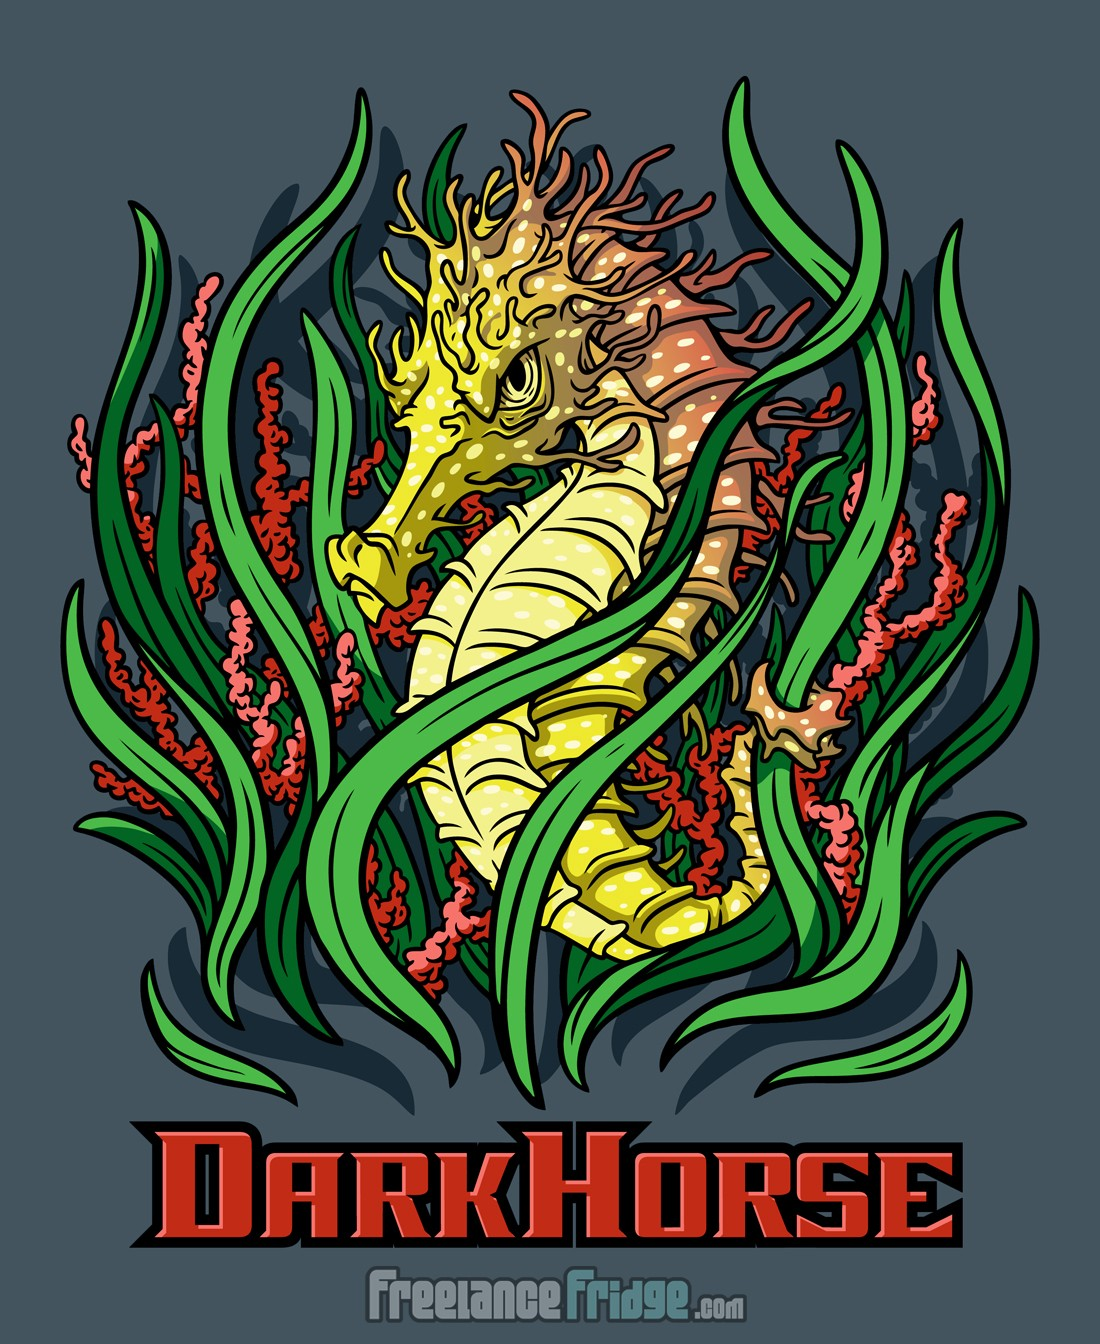 Dark Horse Tough Mean Cool Seahorse T-shirt Vector Artwork Design